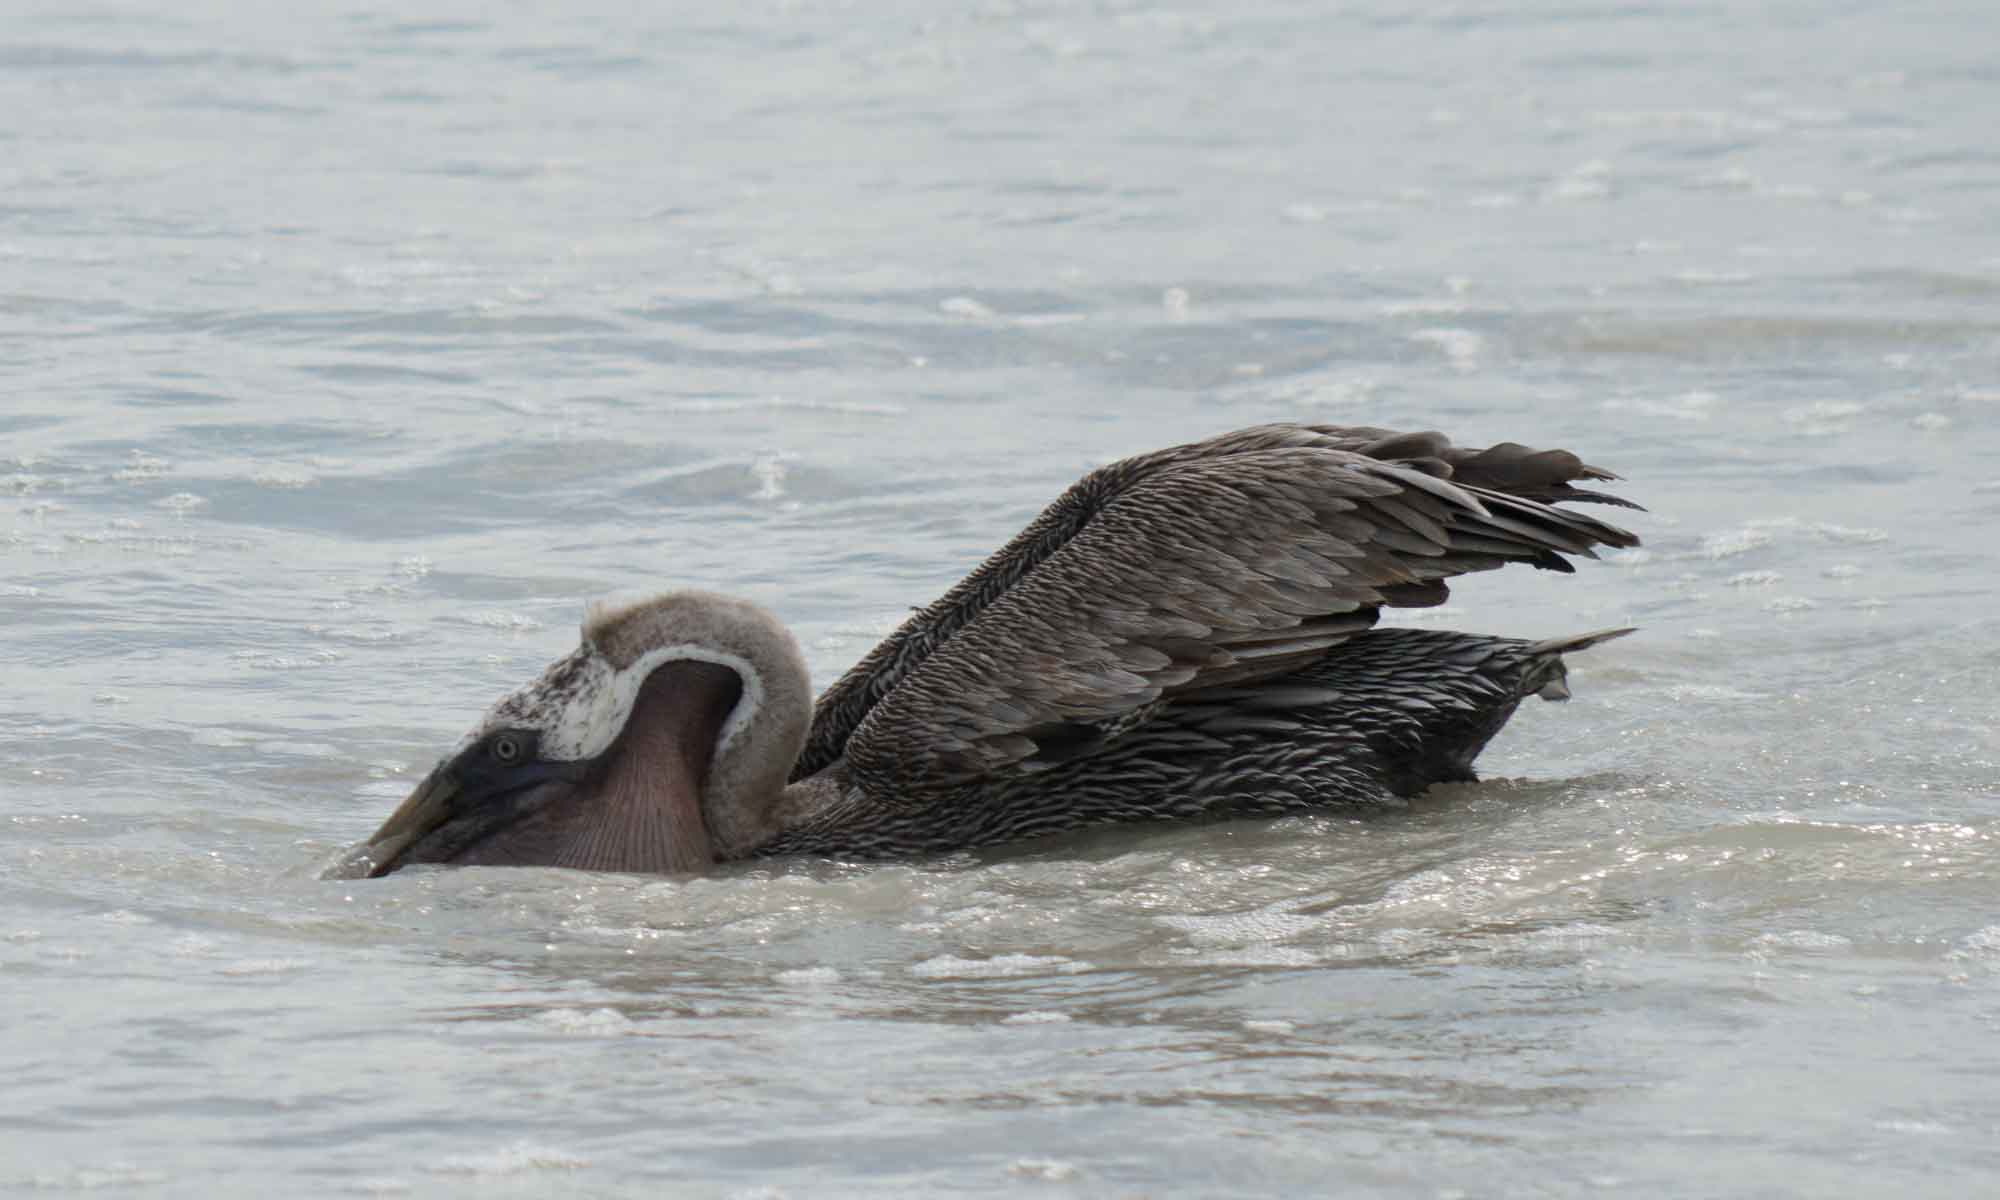 A pelican grabbing some seafood